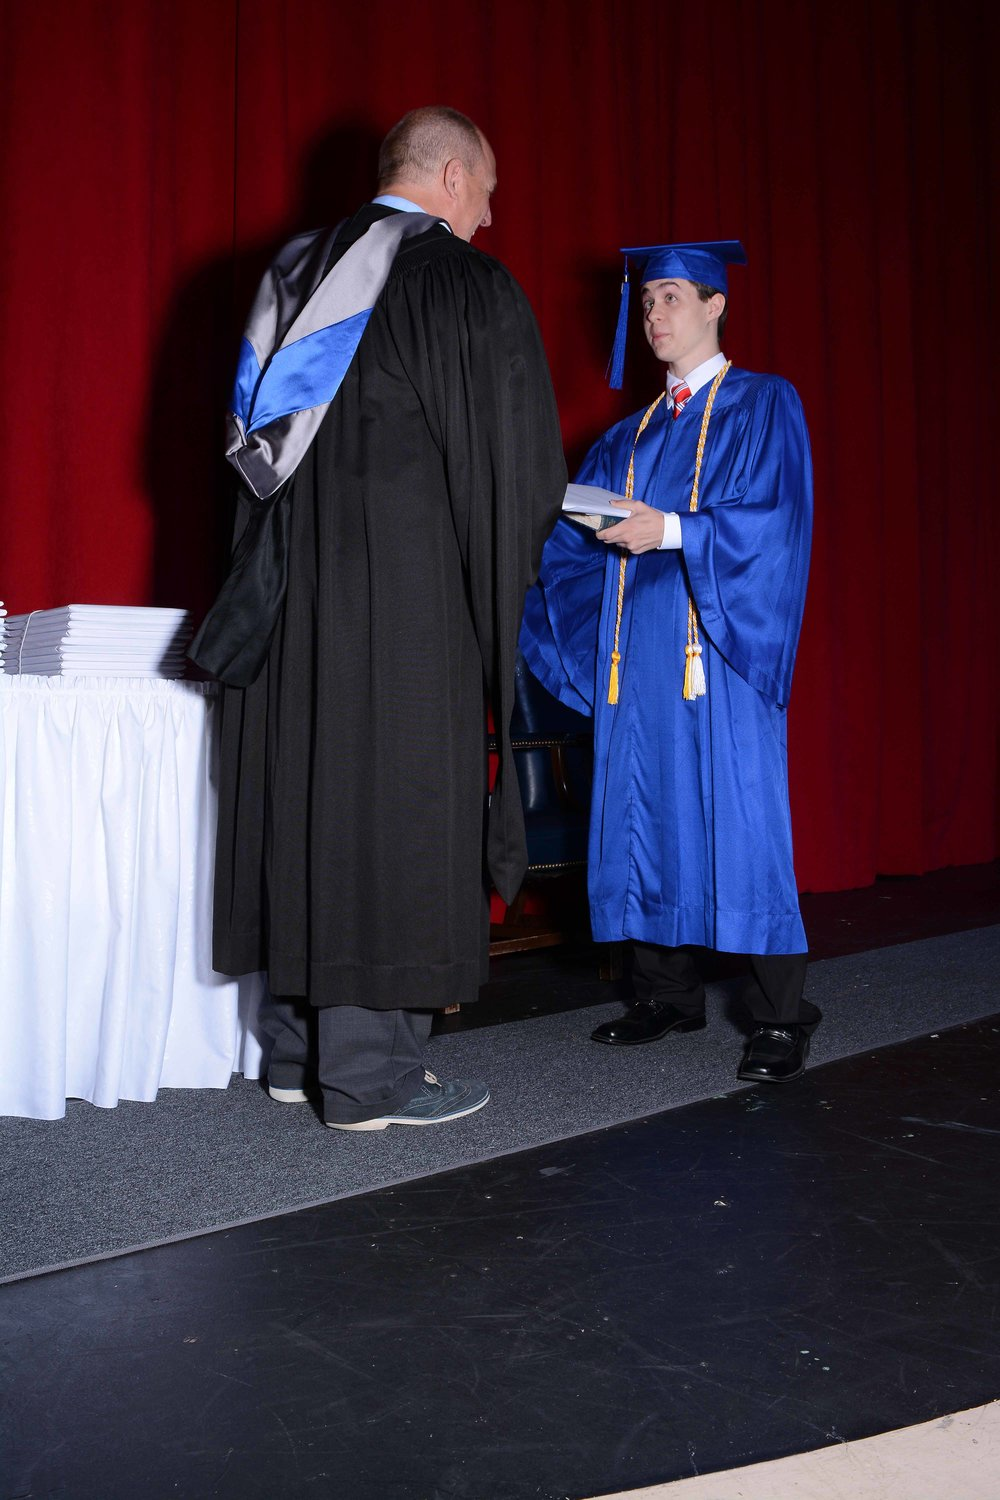 May14 Commencement48.jpg